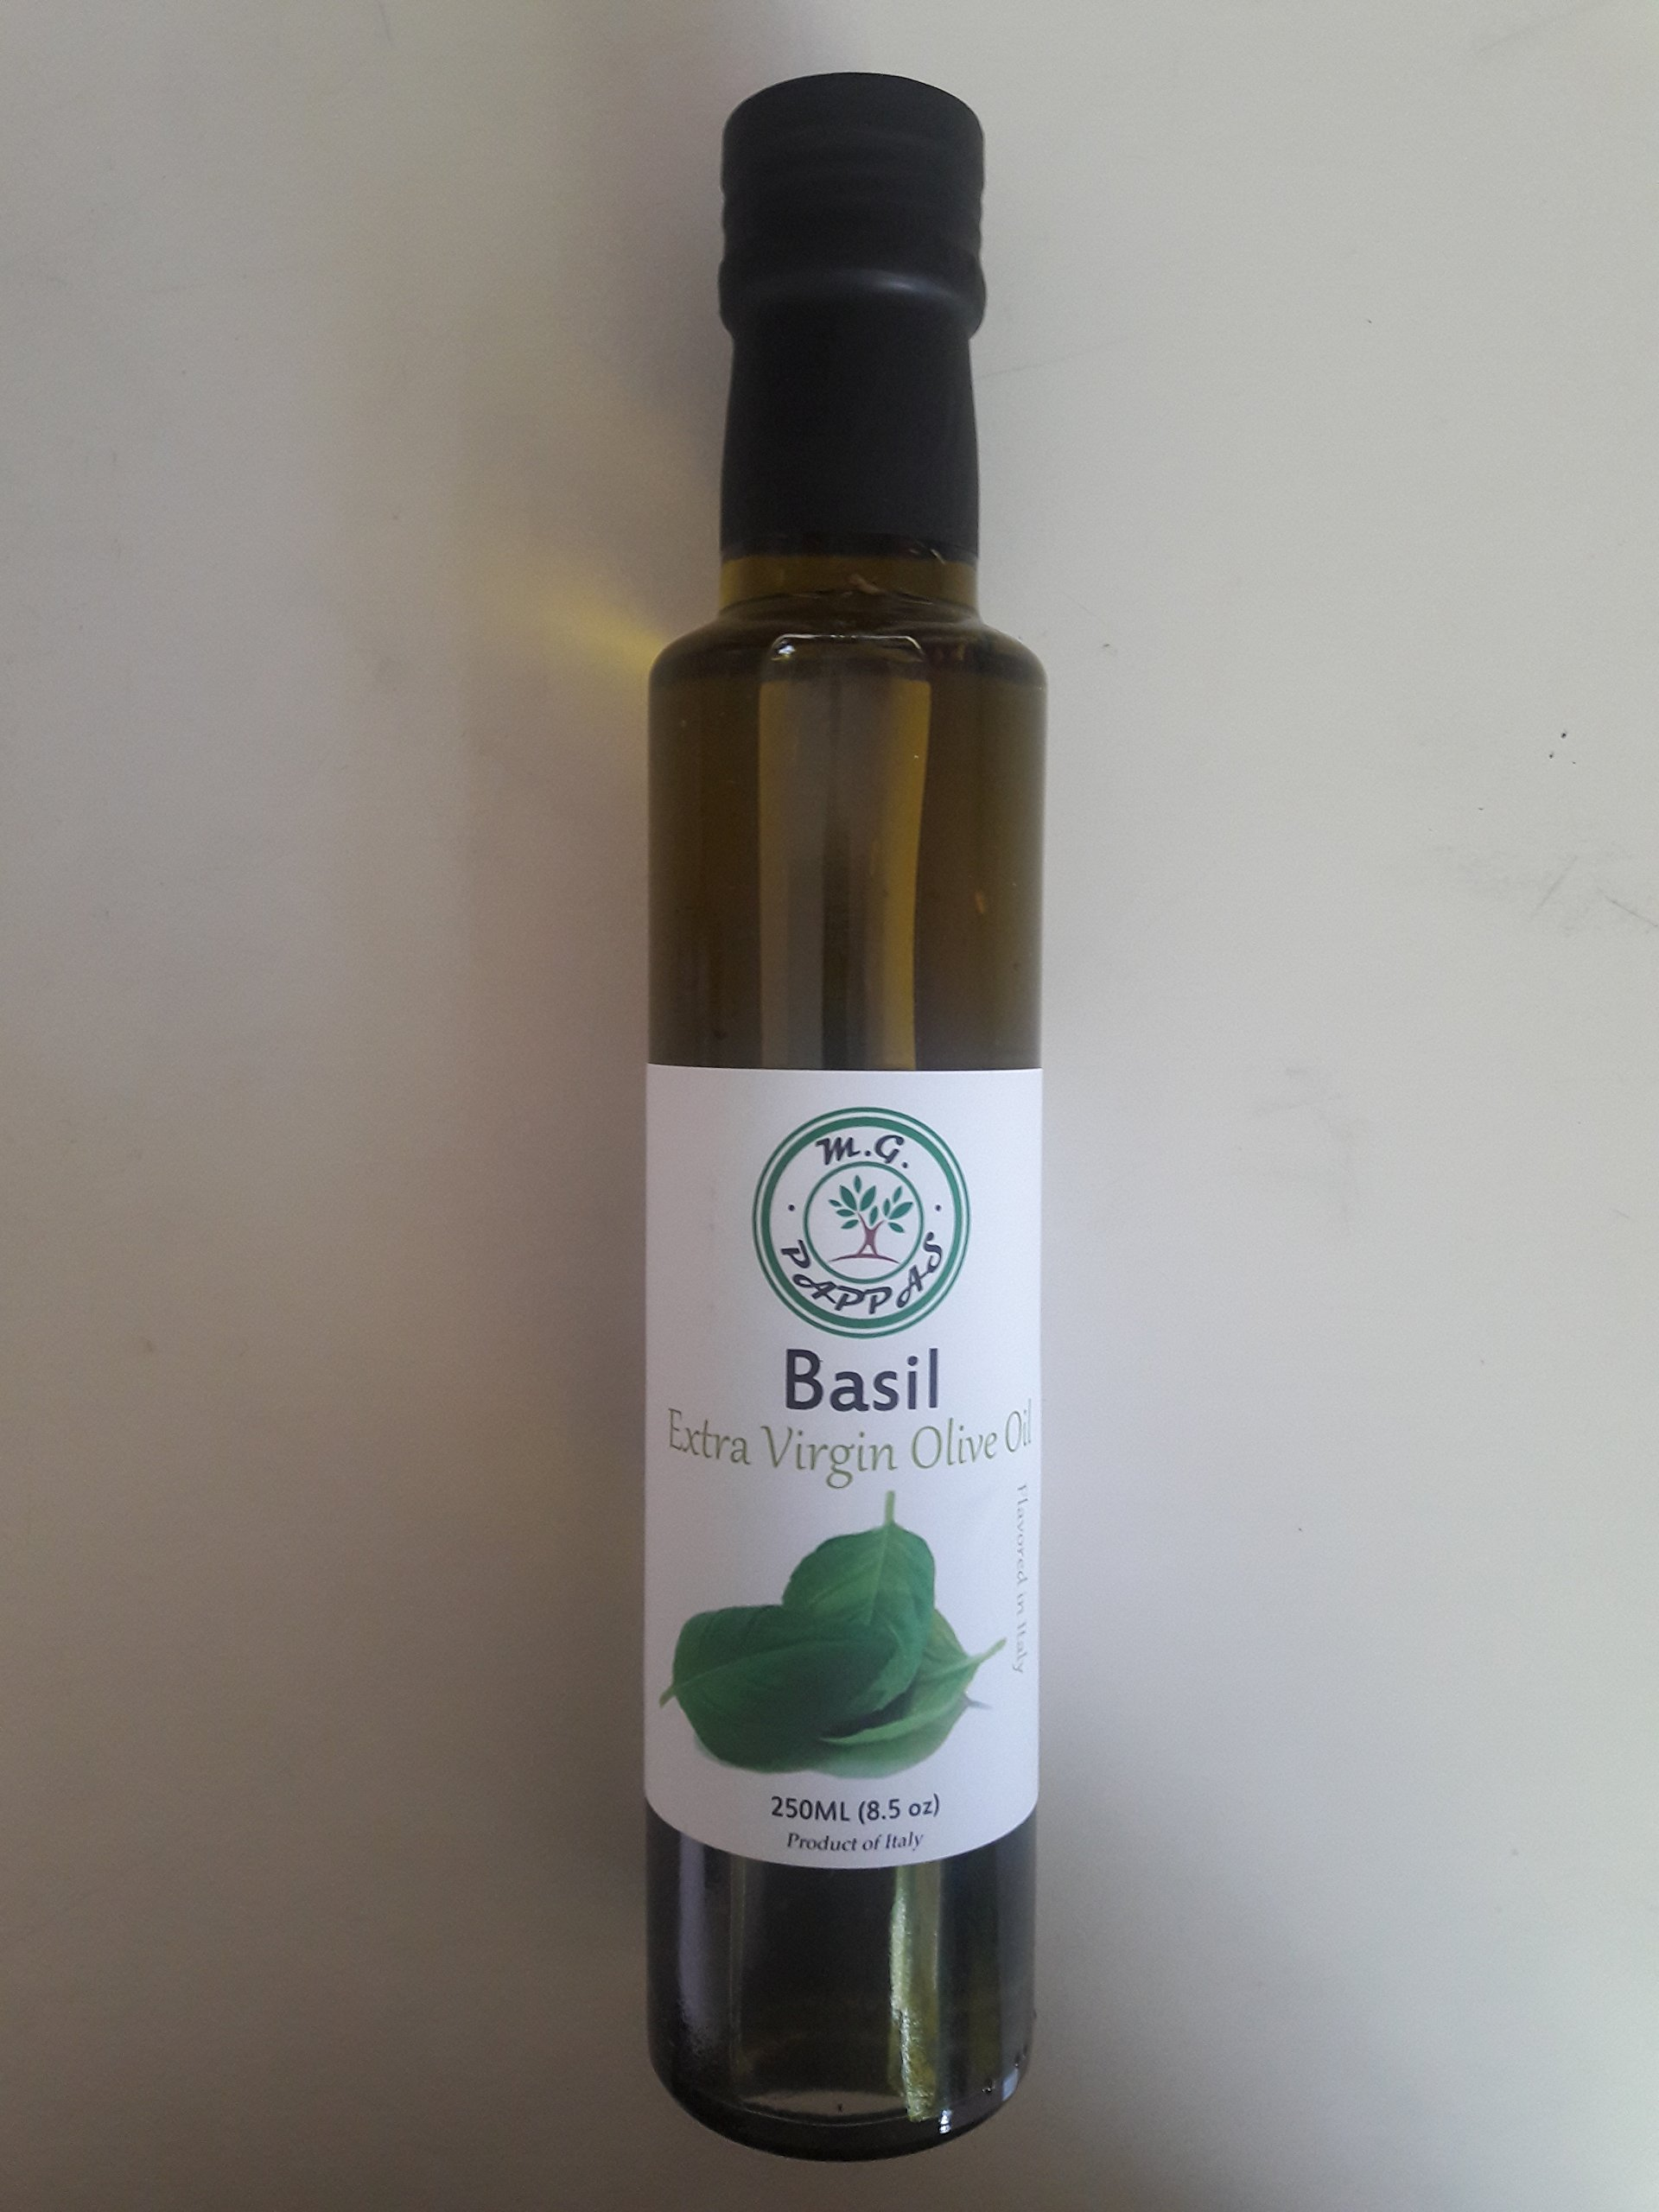 M.G. PAPPAS Basil Infused Olive Oil EVOO Extra Virgin Olive Oil Fresh First Cold Pressed 100% Italian Premium Gourmet Taste Diet Foods Herb Single Origin 8.45 fl. Oz 250 ml 1 100% ITALIAN EXTRA VIRGIN OLIVE OIL: M. G. PAPPAS uses First Cold Pressed EVOO which gives minimum acidity and great oil taste. Also, our Basil Infused Olive Oil includes all the Healthy Benefits that only Extra Virgin Olive Oil can offer. All of our infused extra virgin olive oils are produced, infused and packaged at our facility in Italy. WE INFUSE WITH 100% REAL NATURAL INGREDIENTS : Basil Infusion is All Natural and comes from Basil Leaves. No Artificial Flavors, No Fillers, No Additives, No Colorants, No Preservatives, Gluten and Cholesterol Free. GREAT GIFT IDEA : Give this amazing product to your family and friends. This is a 250ml glass bottle of a Healthy source of vitamins and Mediterranean taste. Serving Size 1 Tablespoon (15ml). Enjoy!!